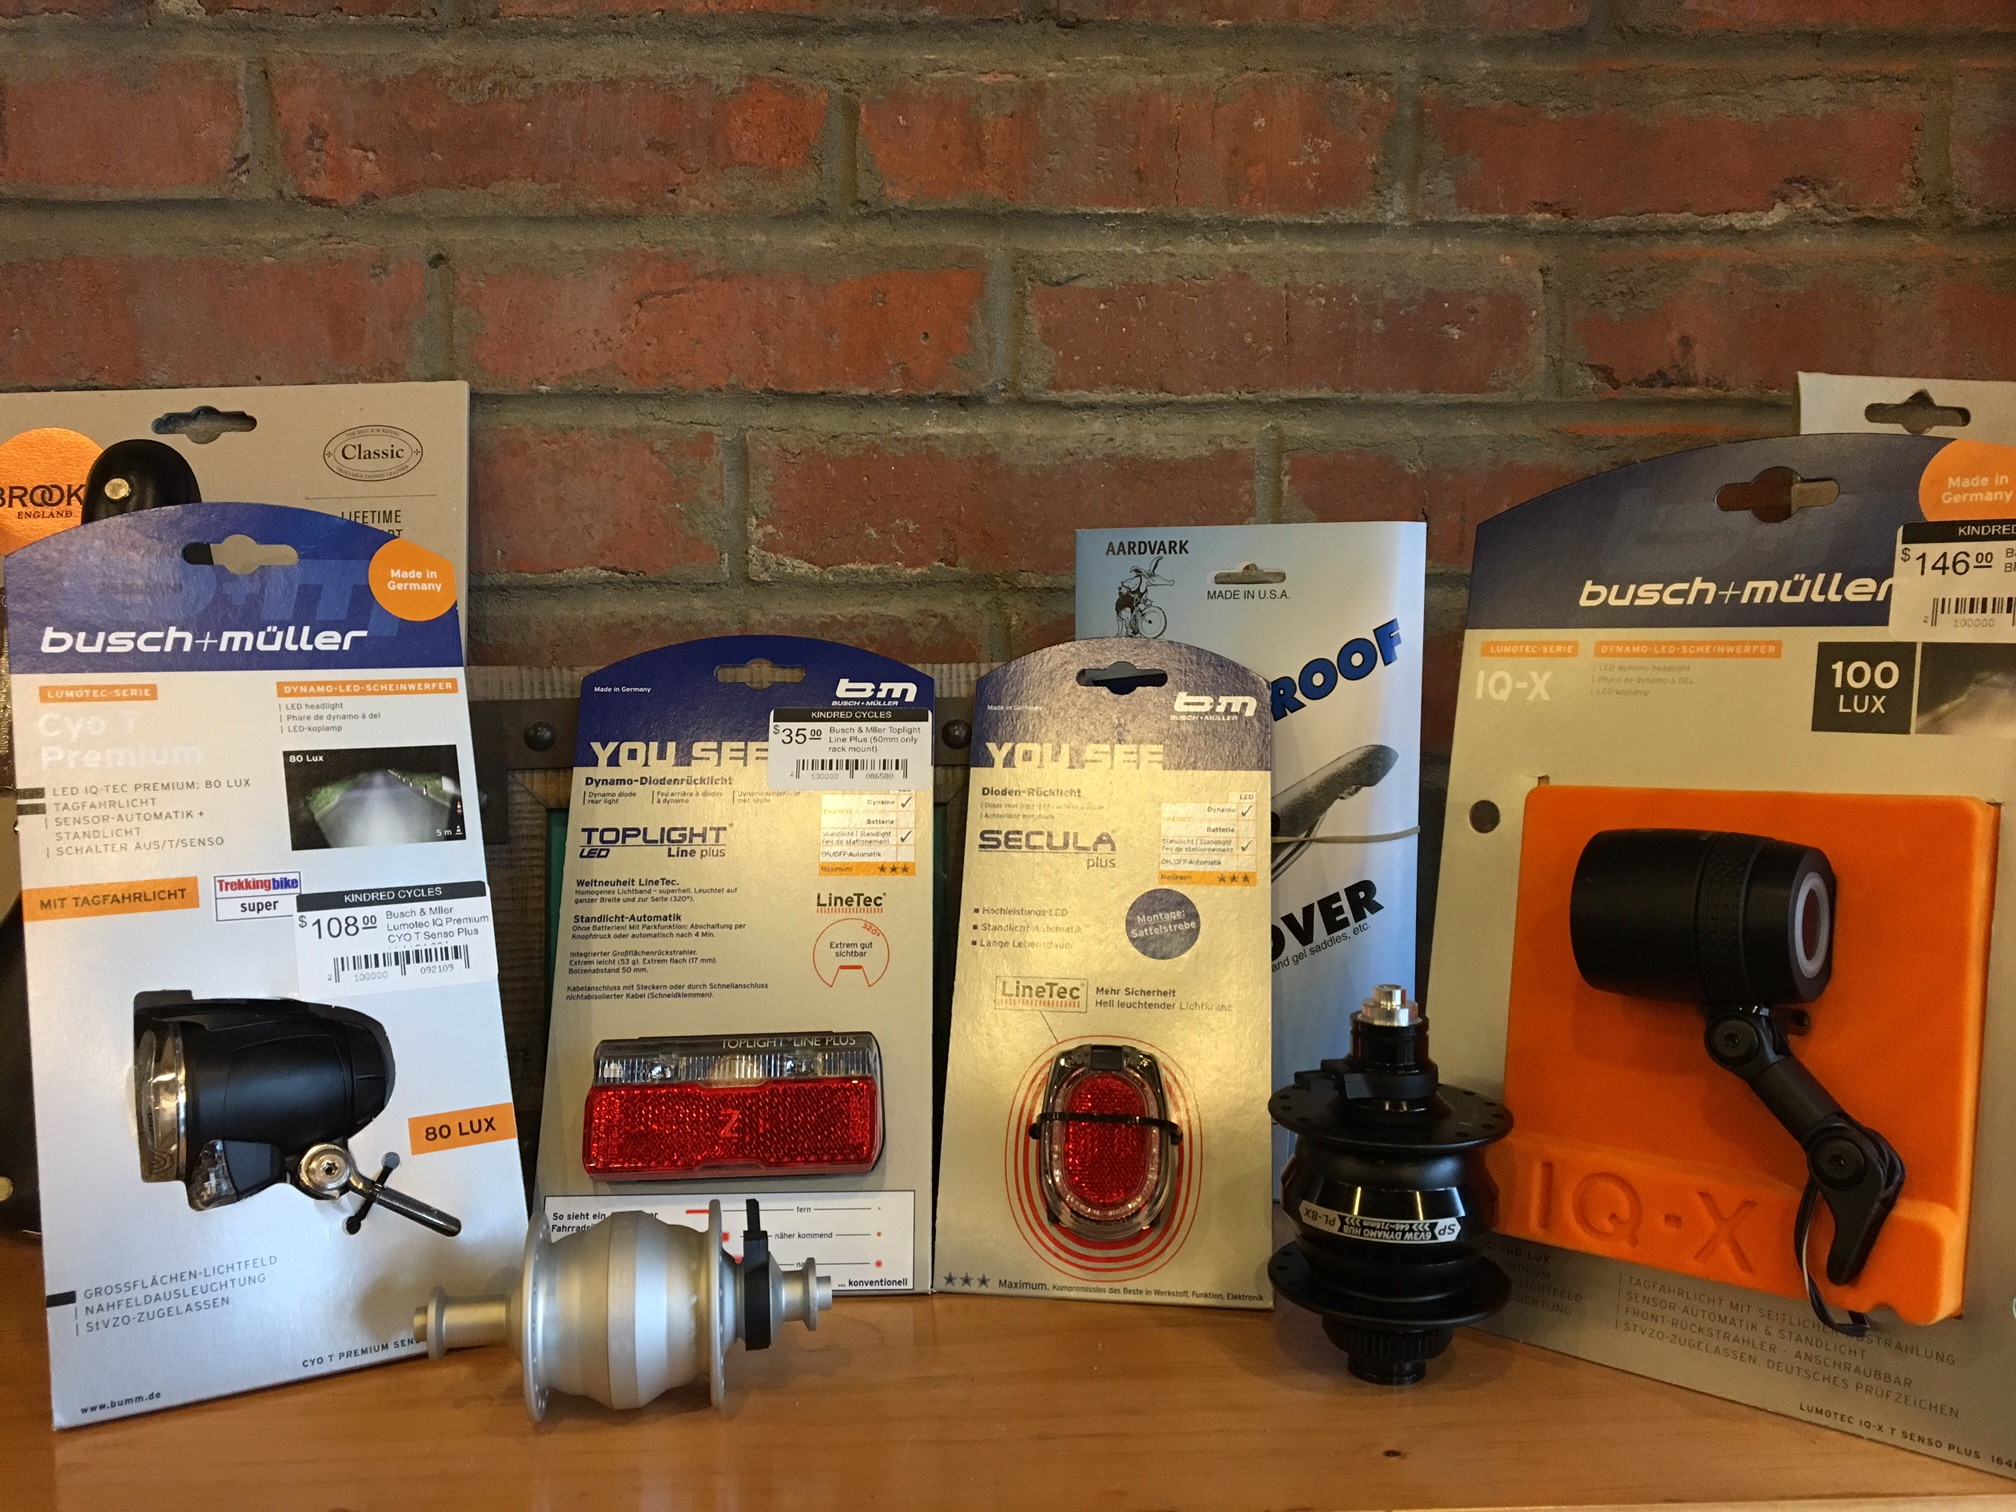 Here are some of the Dynamo products we keep in stock here at the shop.  Most of the lights we carry are from Germany, where until 2013, all bikes over 11kg legally had to have a dynamo lighting systems to be in compliance with the law.  Now battery powered lights are legal but Dynamos still rule the roost in Germany and much of Europe.